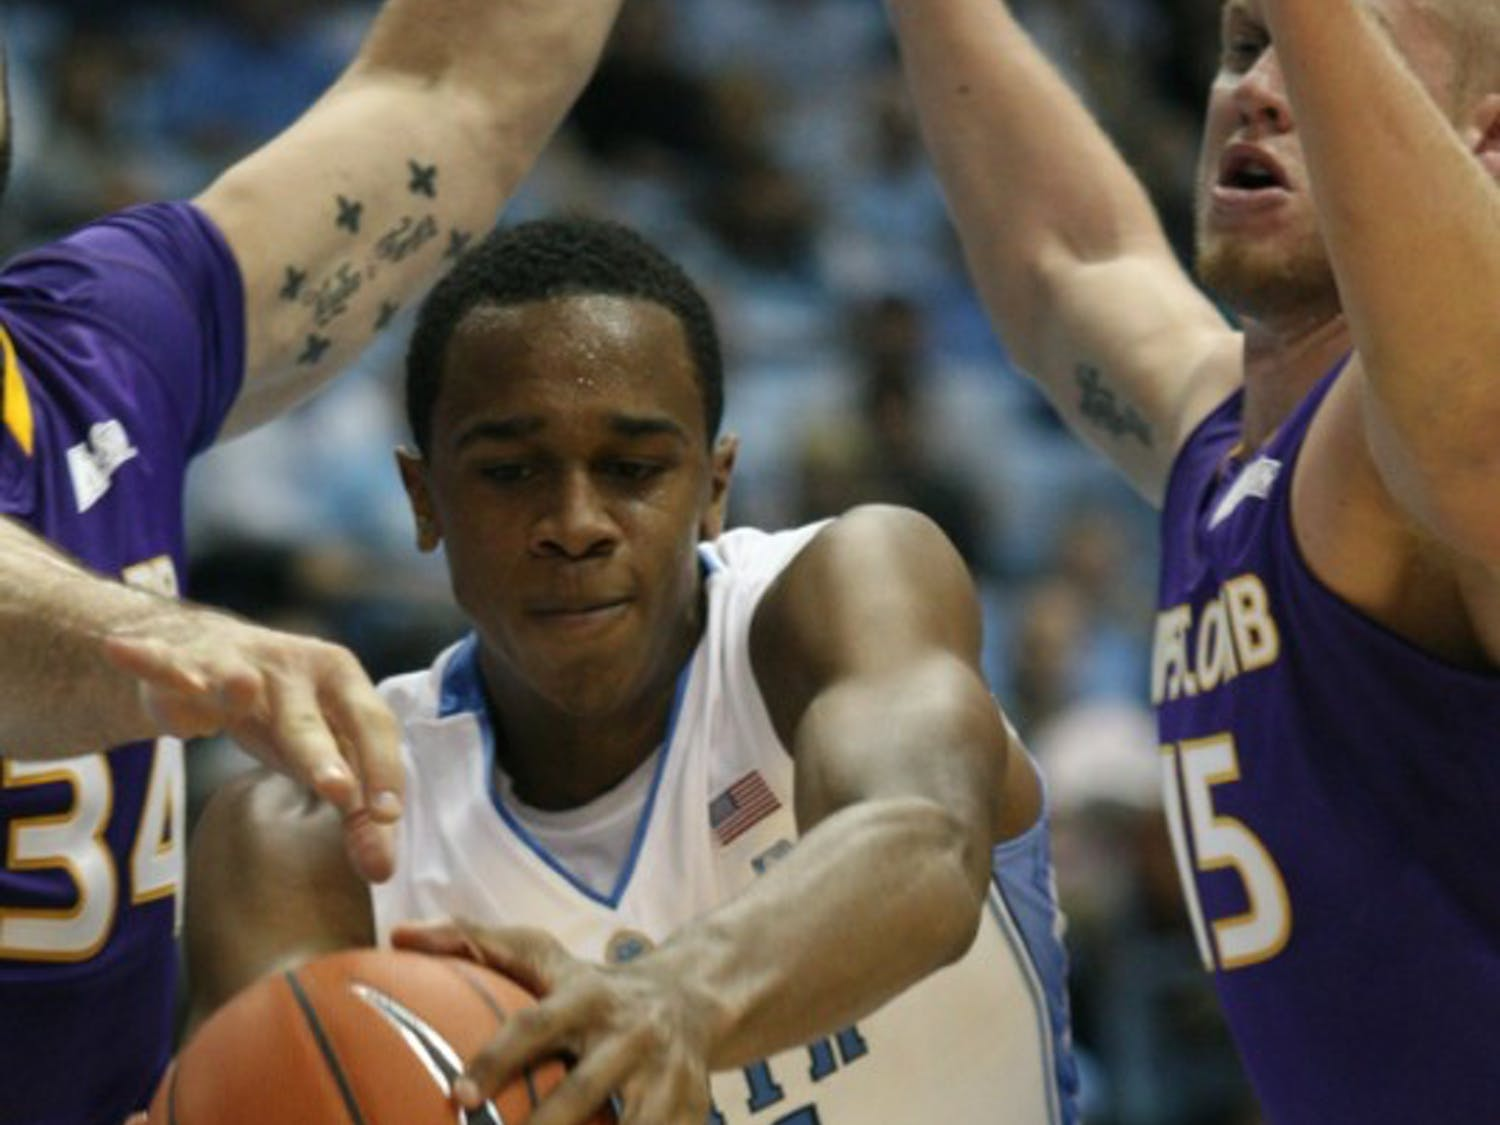 John Henson, seen here in UNC's game against Lipscomb on Nov. 12, carried the load inside with Zeller's foul trouble, scoring 16 points.